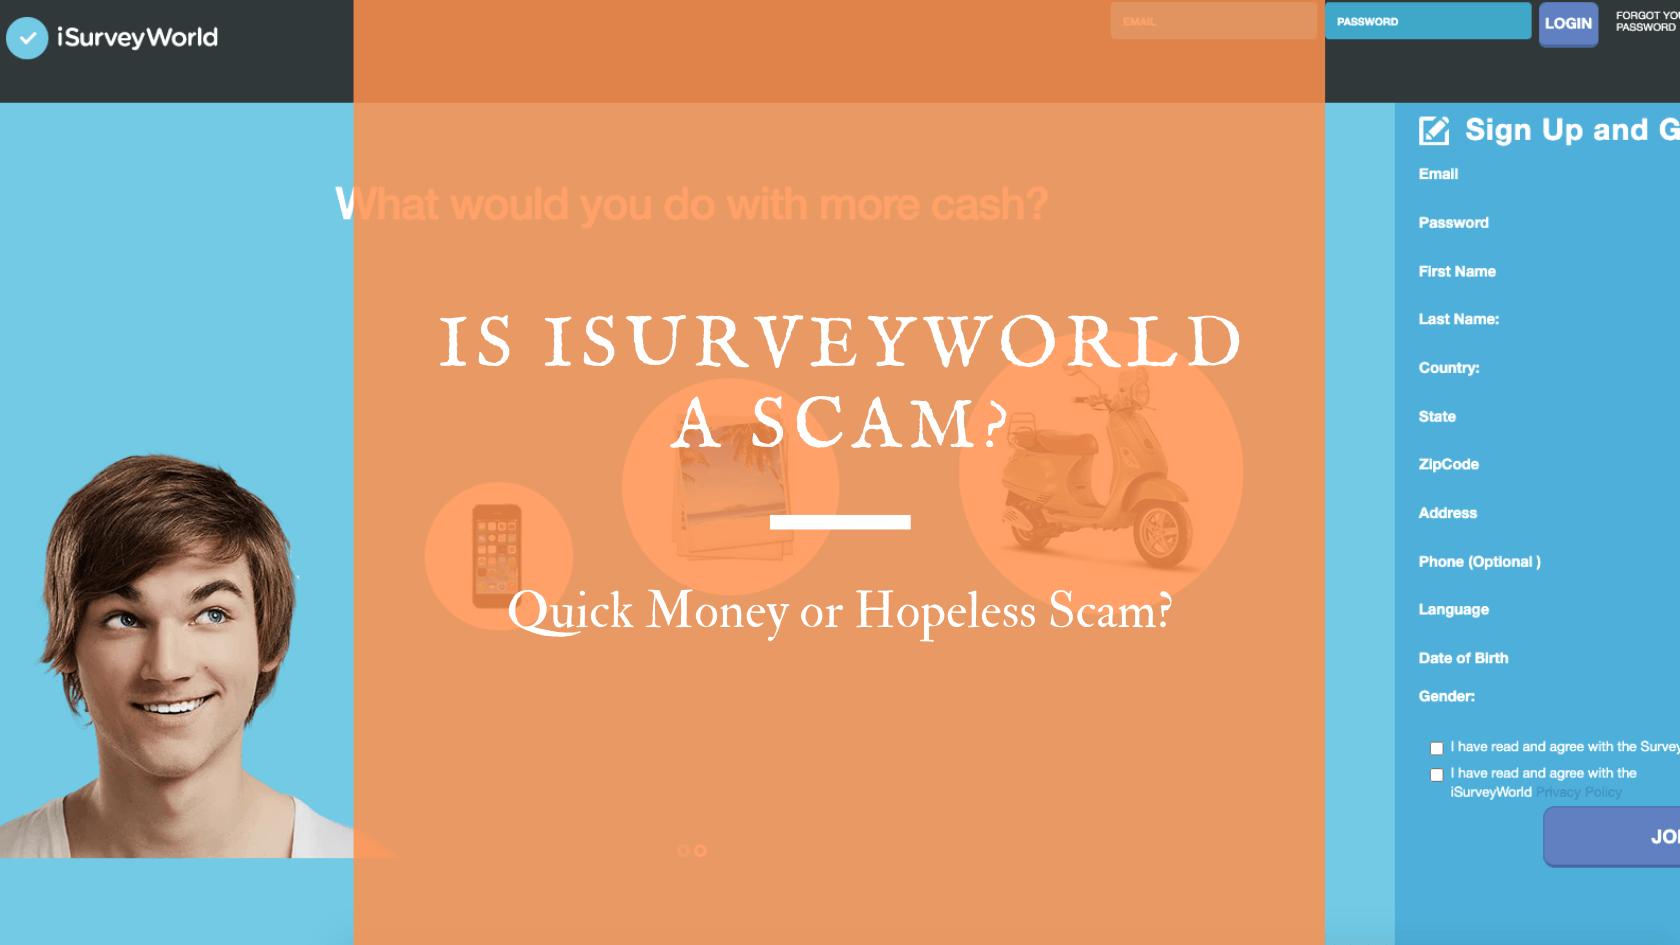 Is iSurveyWorld a Scam